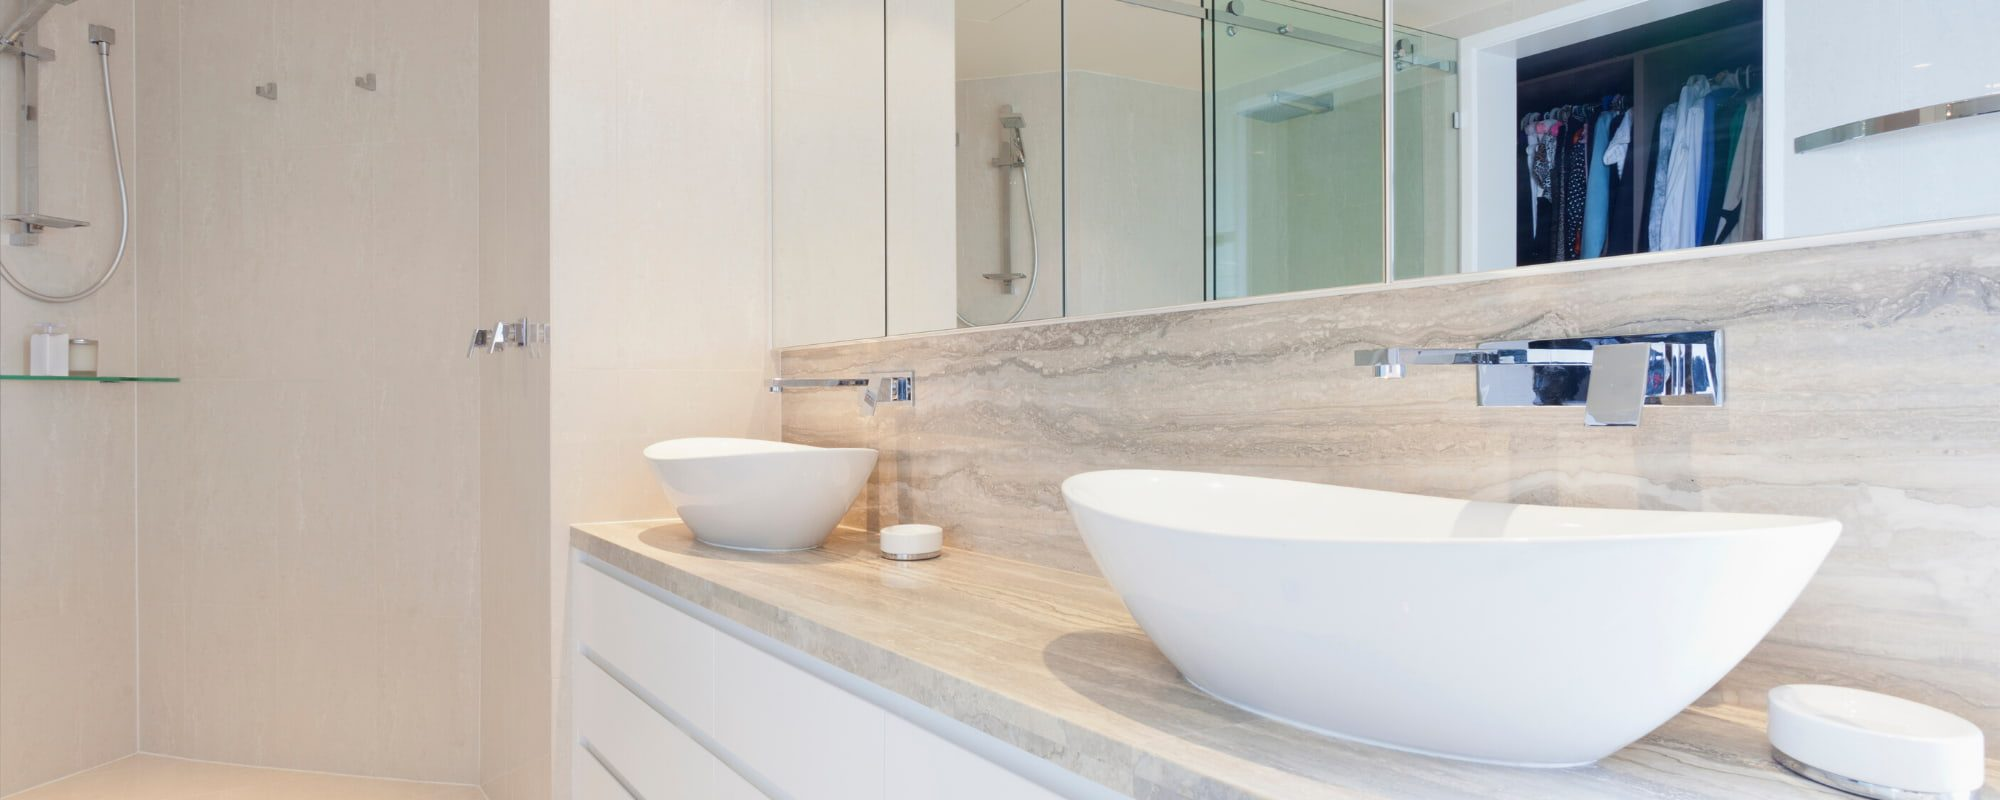 marble countertops with white sinks and a shower